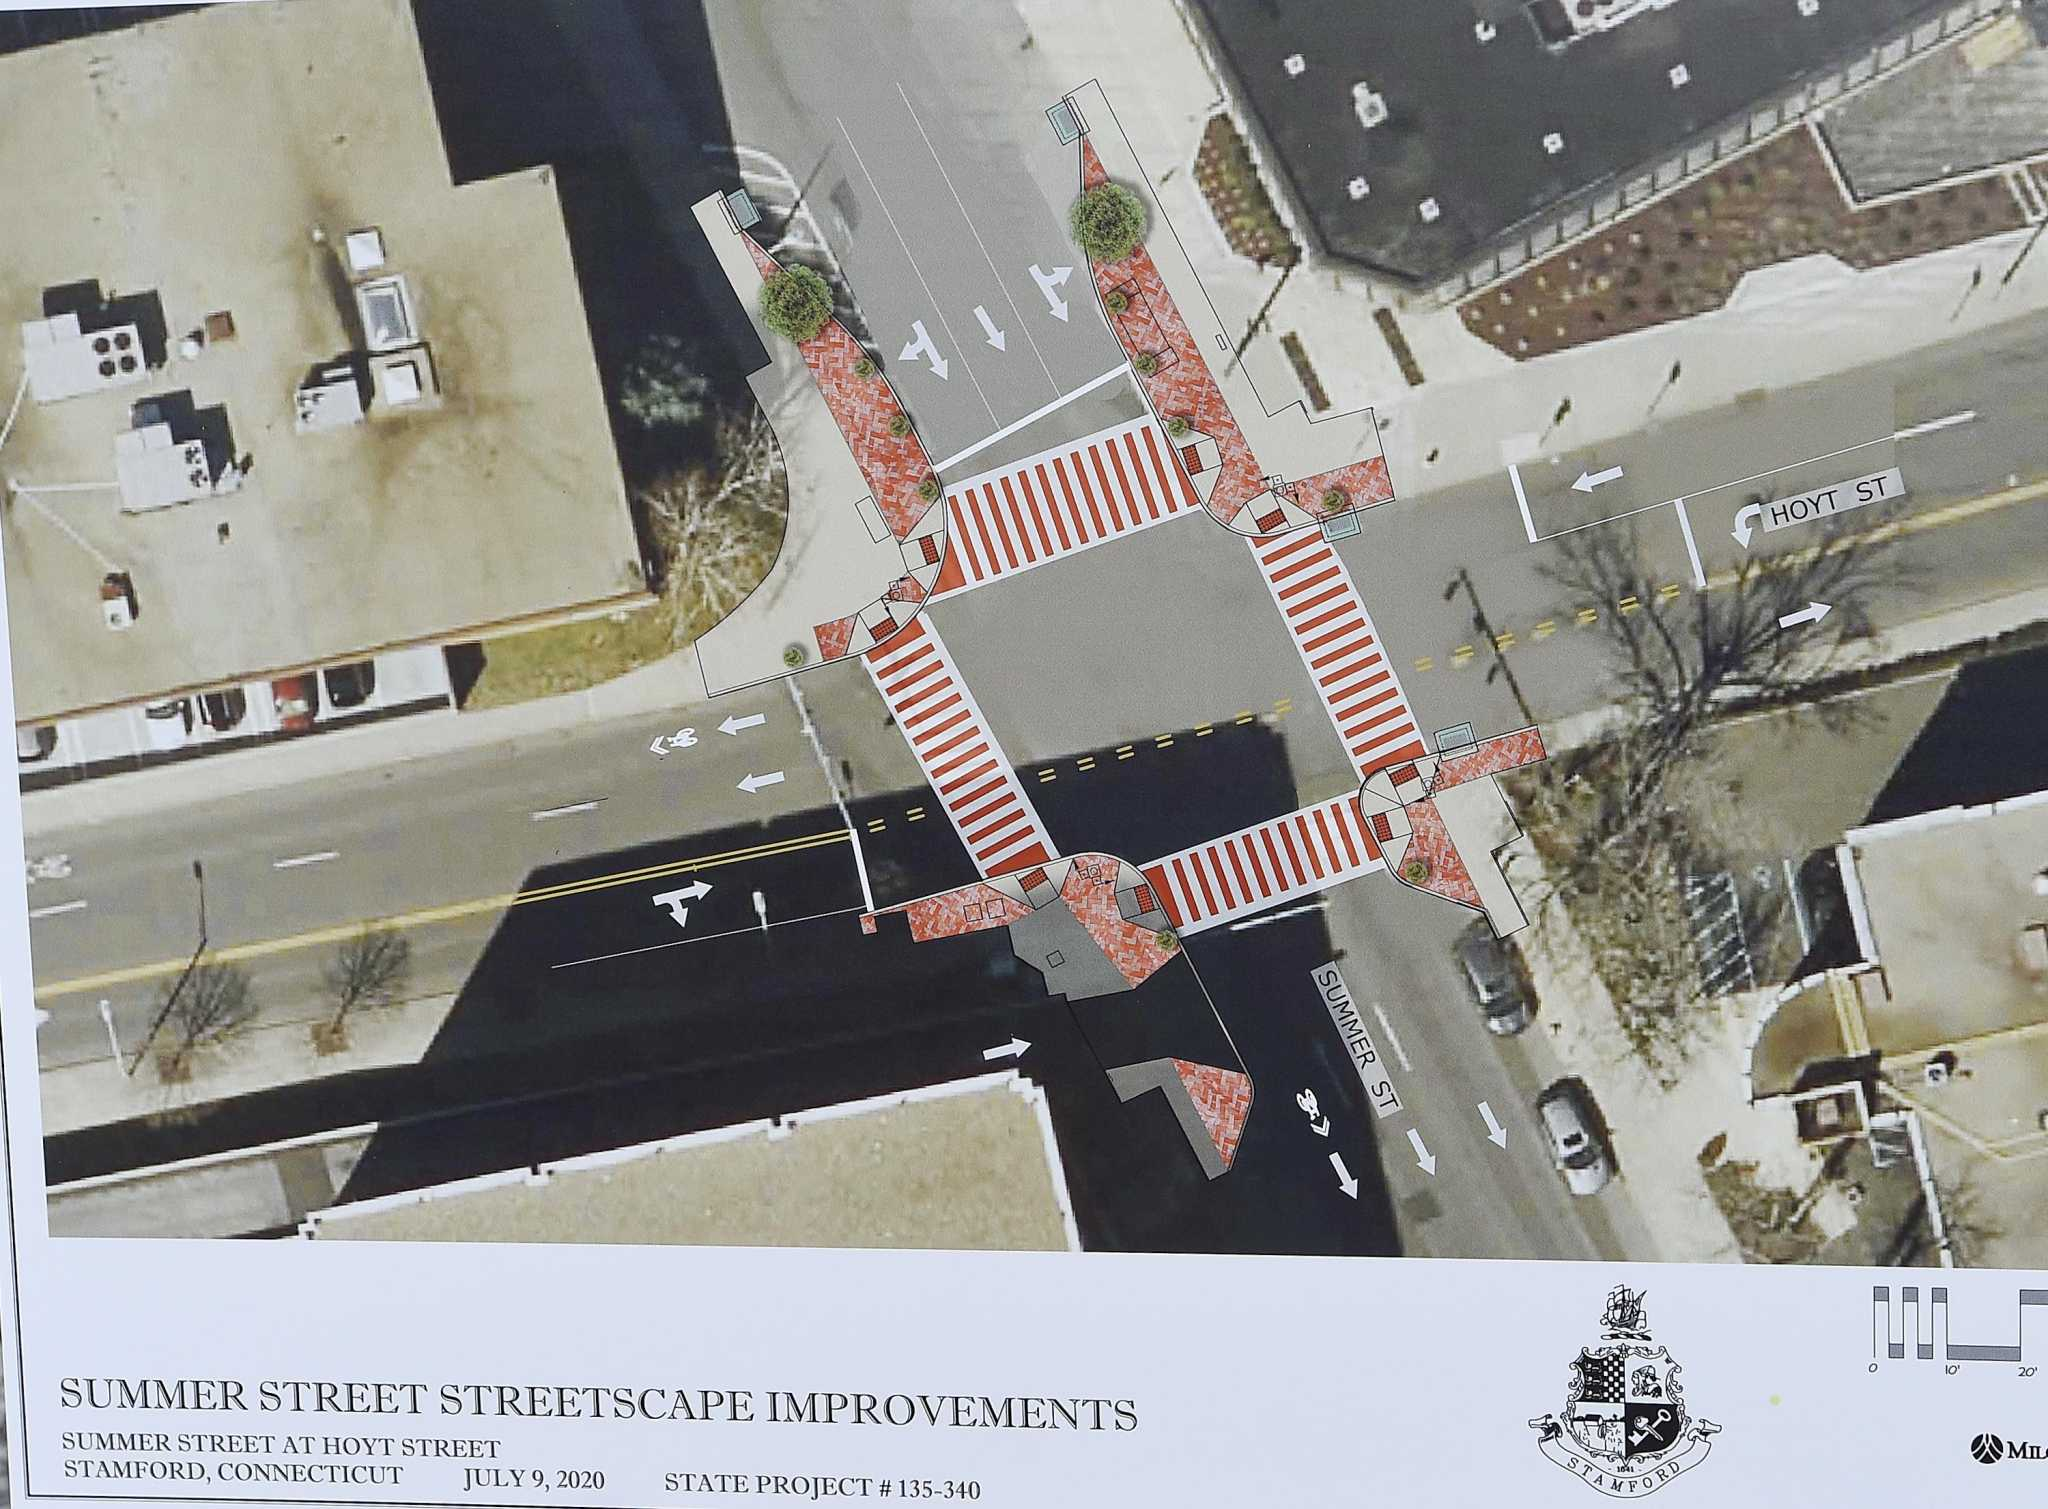 Jack Cavanaugh: Should Summer and Bedford streets become 2-way streets again in downtown Stamford?